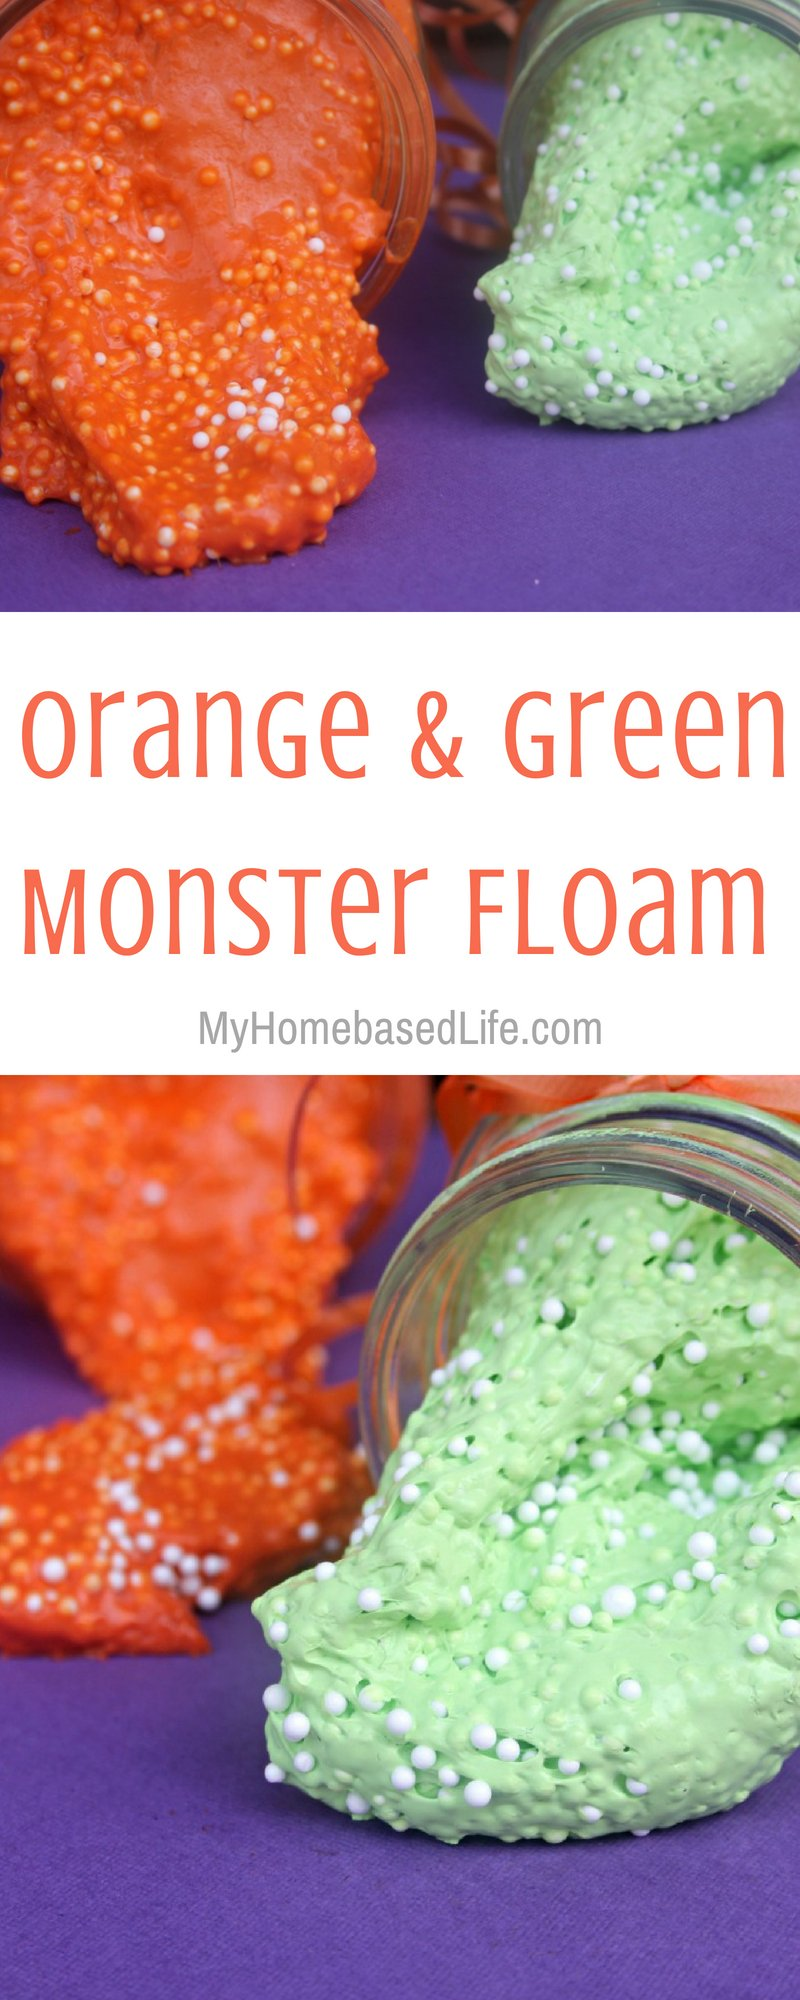 Monster Floamis what you need to keep the kids occupied. So easy to make and the fun lasts longer than 15 minutes! Give it a try with this recipe. #floam #monsters #kidsactivity #kids #creative #myhomebasedlife   Kids Activities   Floam Recipes   Monster Activities  